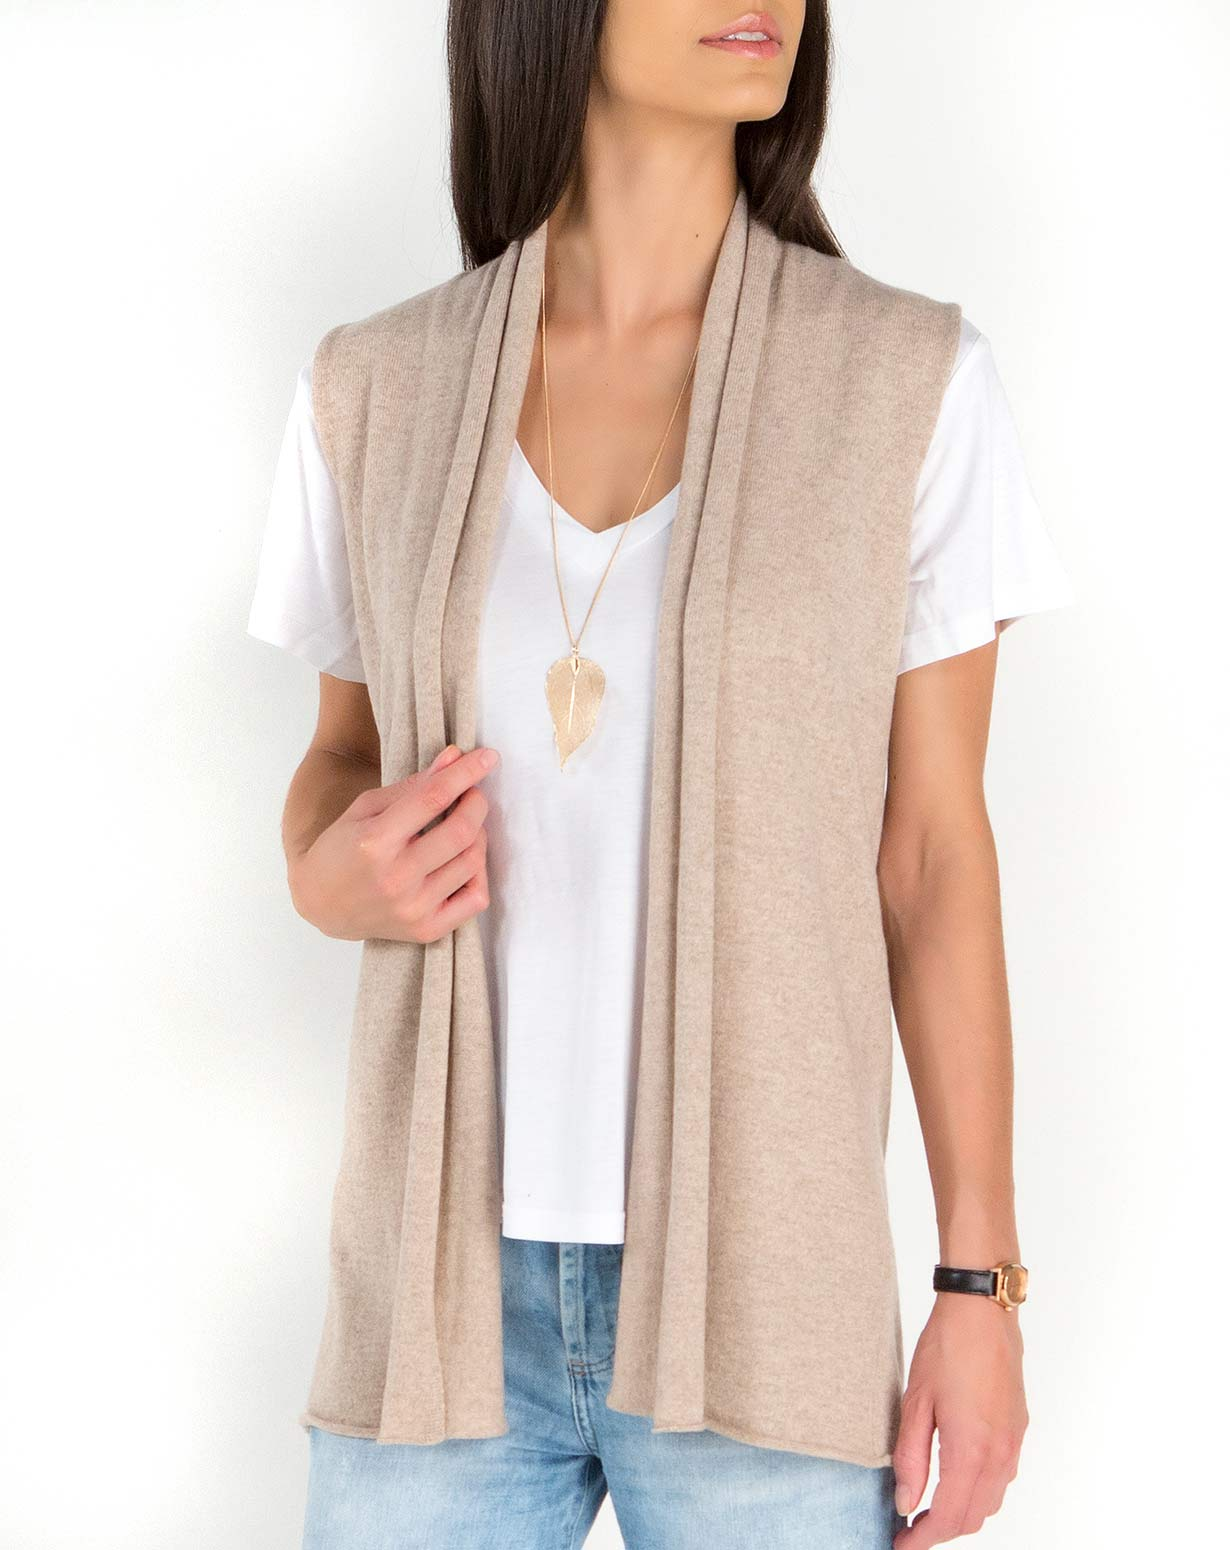 8887edda5b4dd Women s Pure Cashmere Sleeveless Cardigan